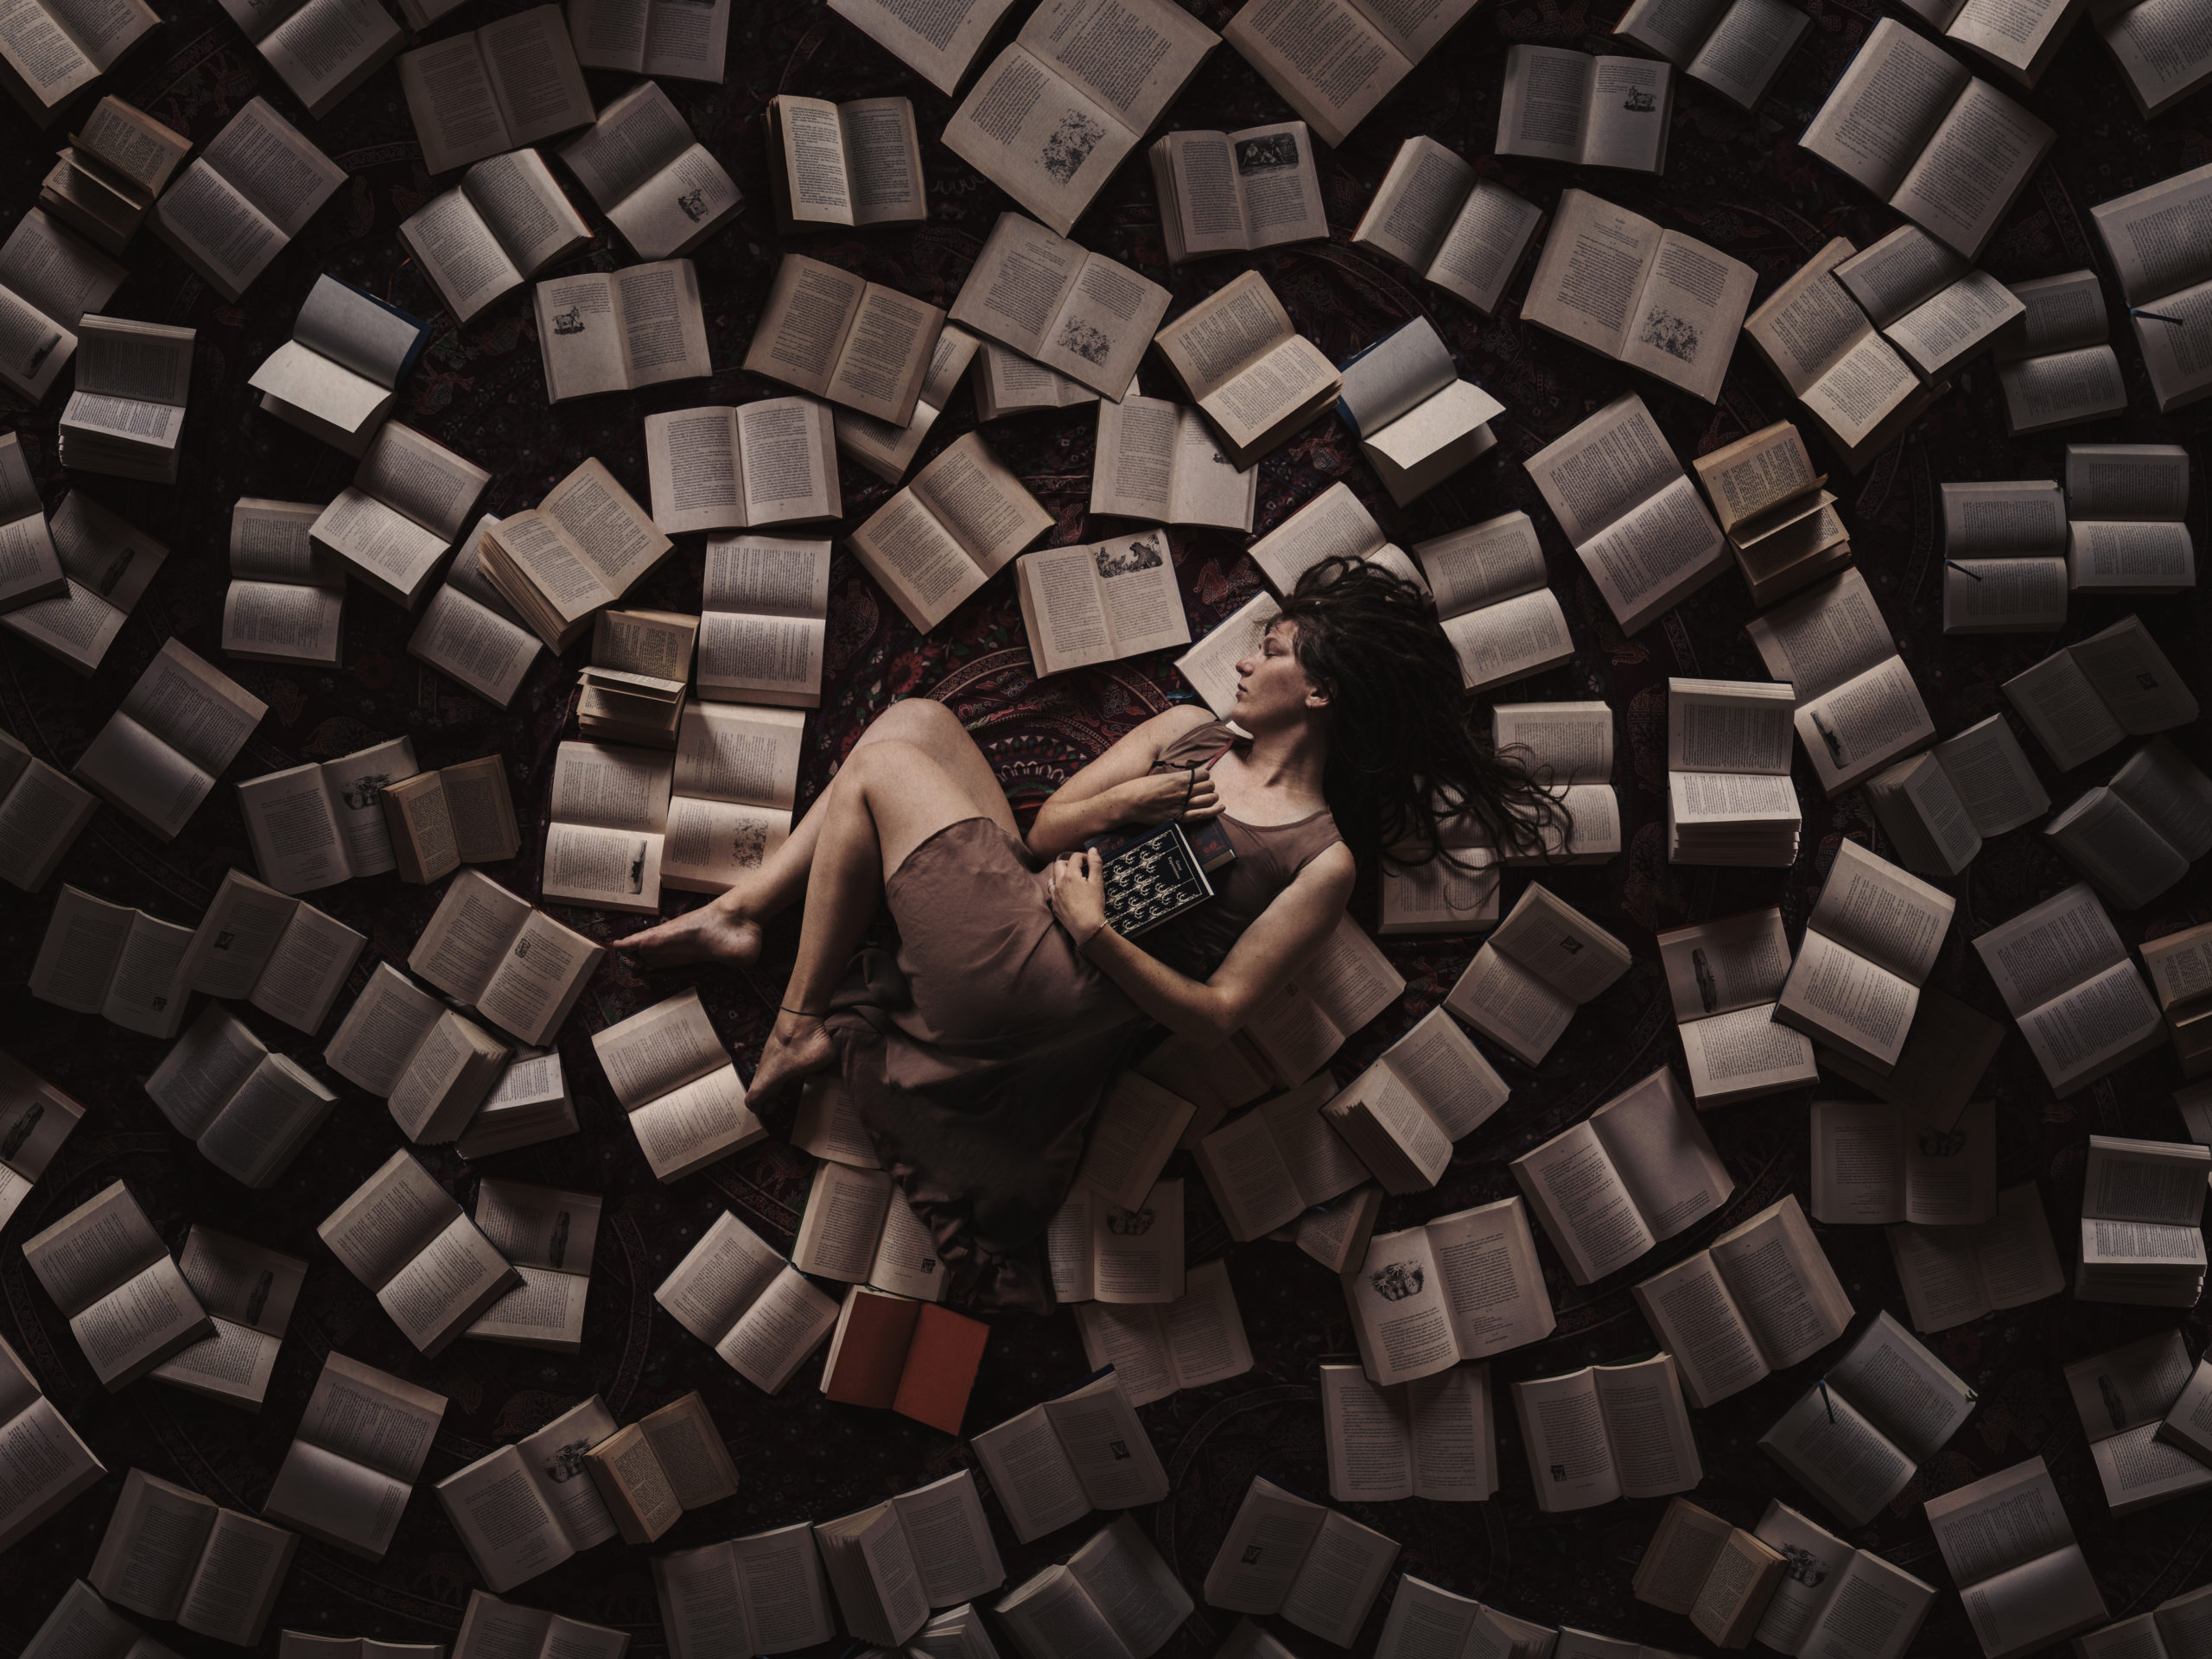 Self portrait photography by Anna Heimkreiter. The creative artwork shows a girl from above surrounded by books.